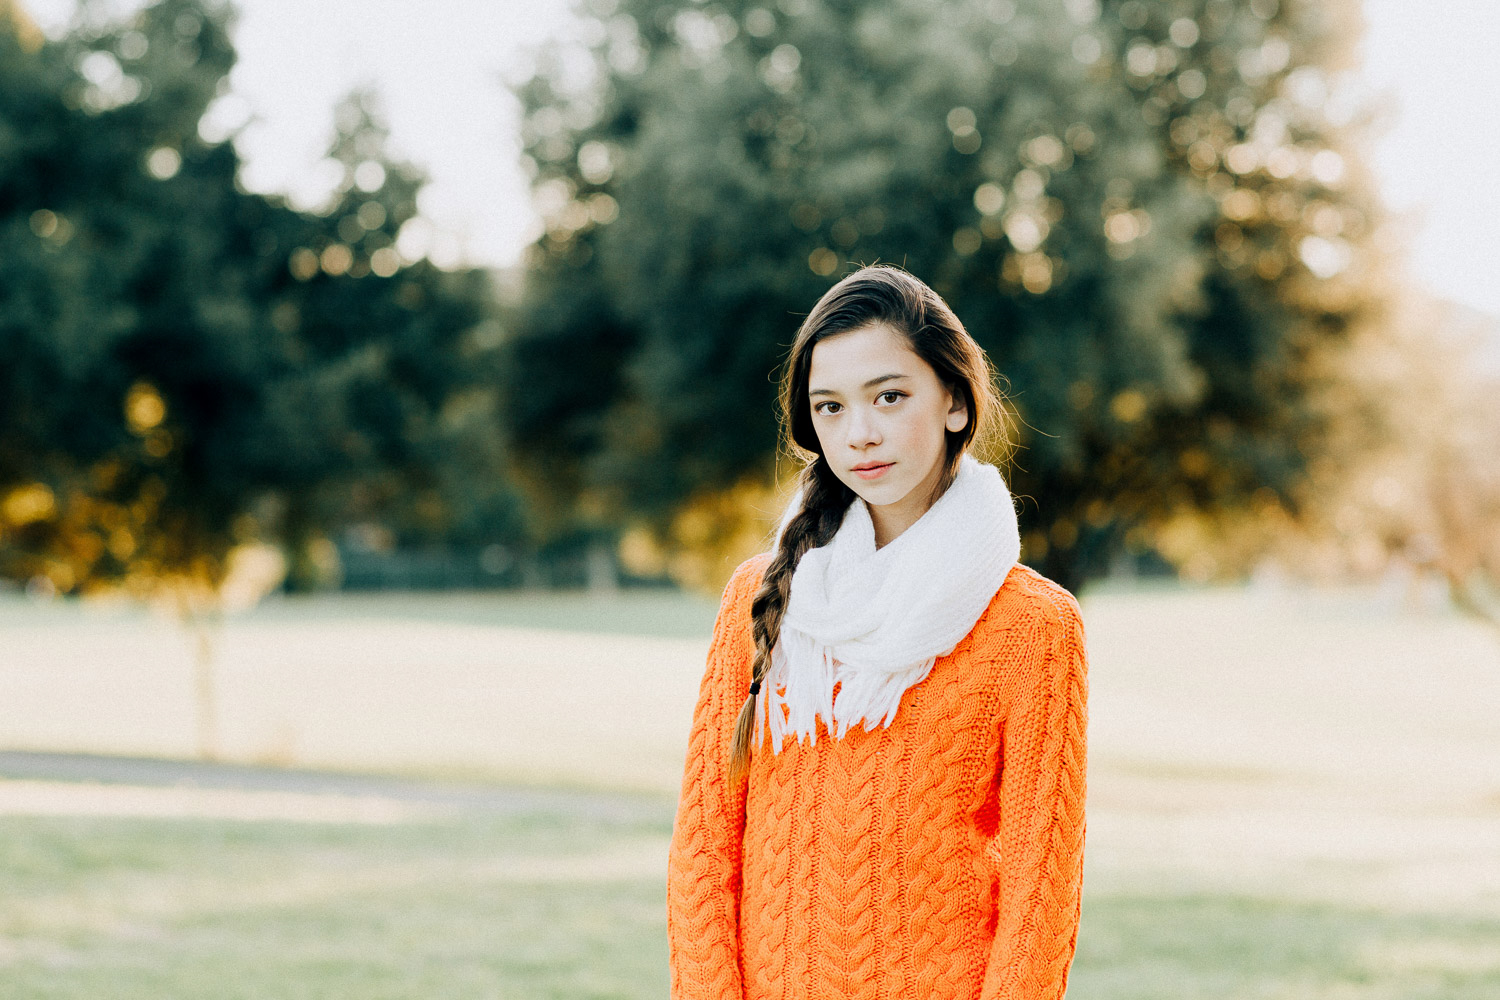 Image of a teenage girl wearing an orange sweater in front of trees